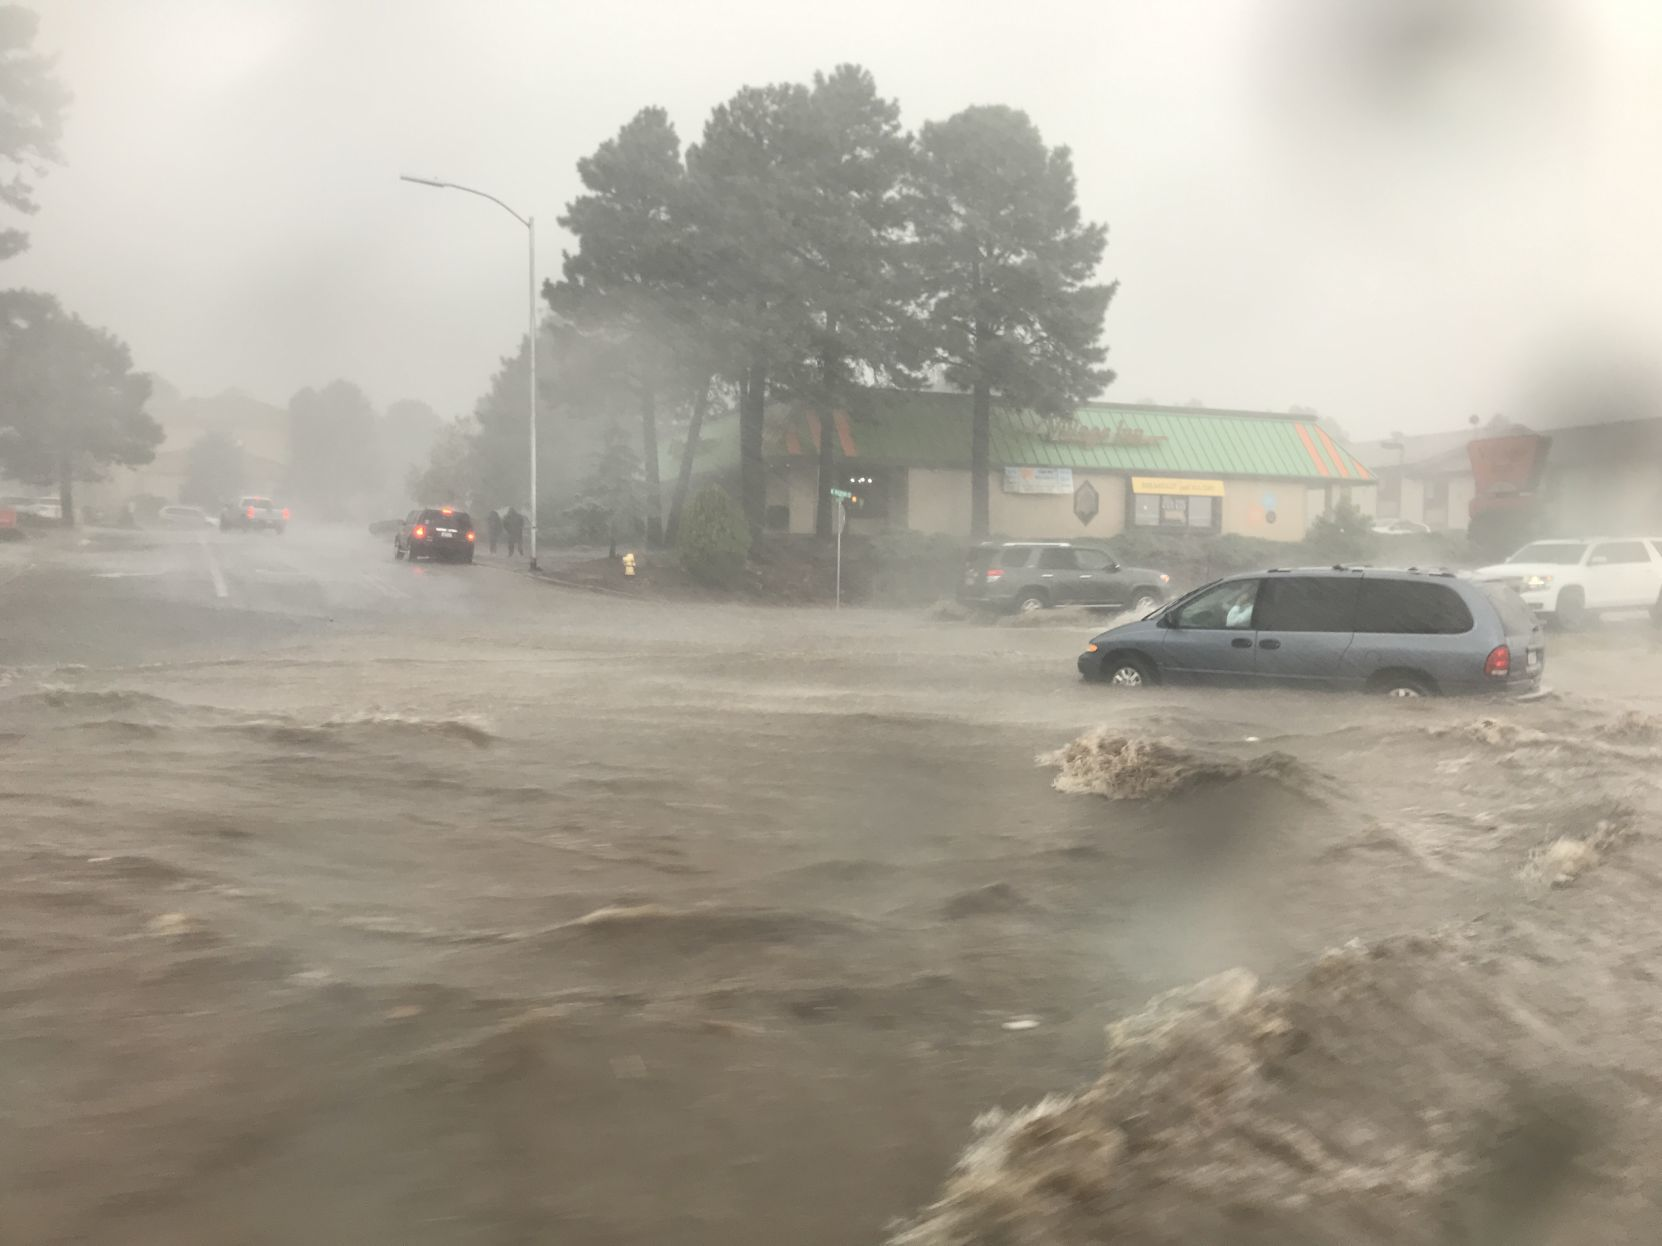 Flood in Flagstaff, AZ